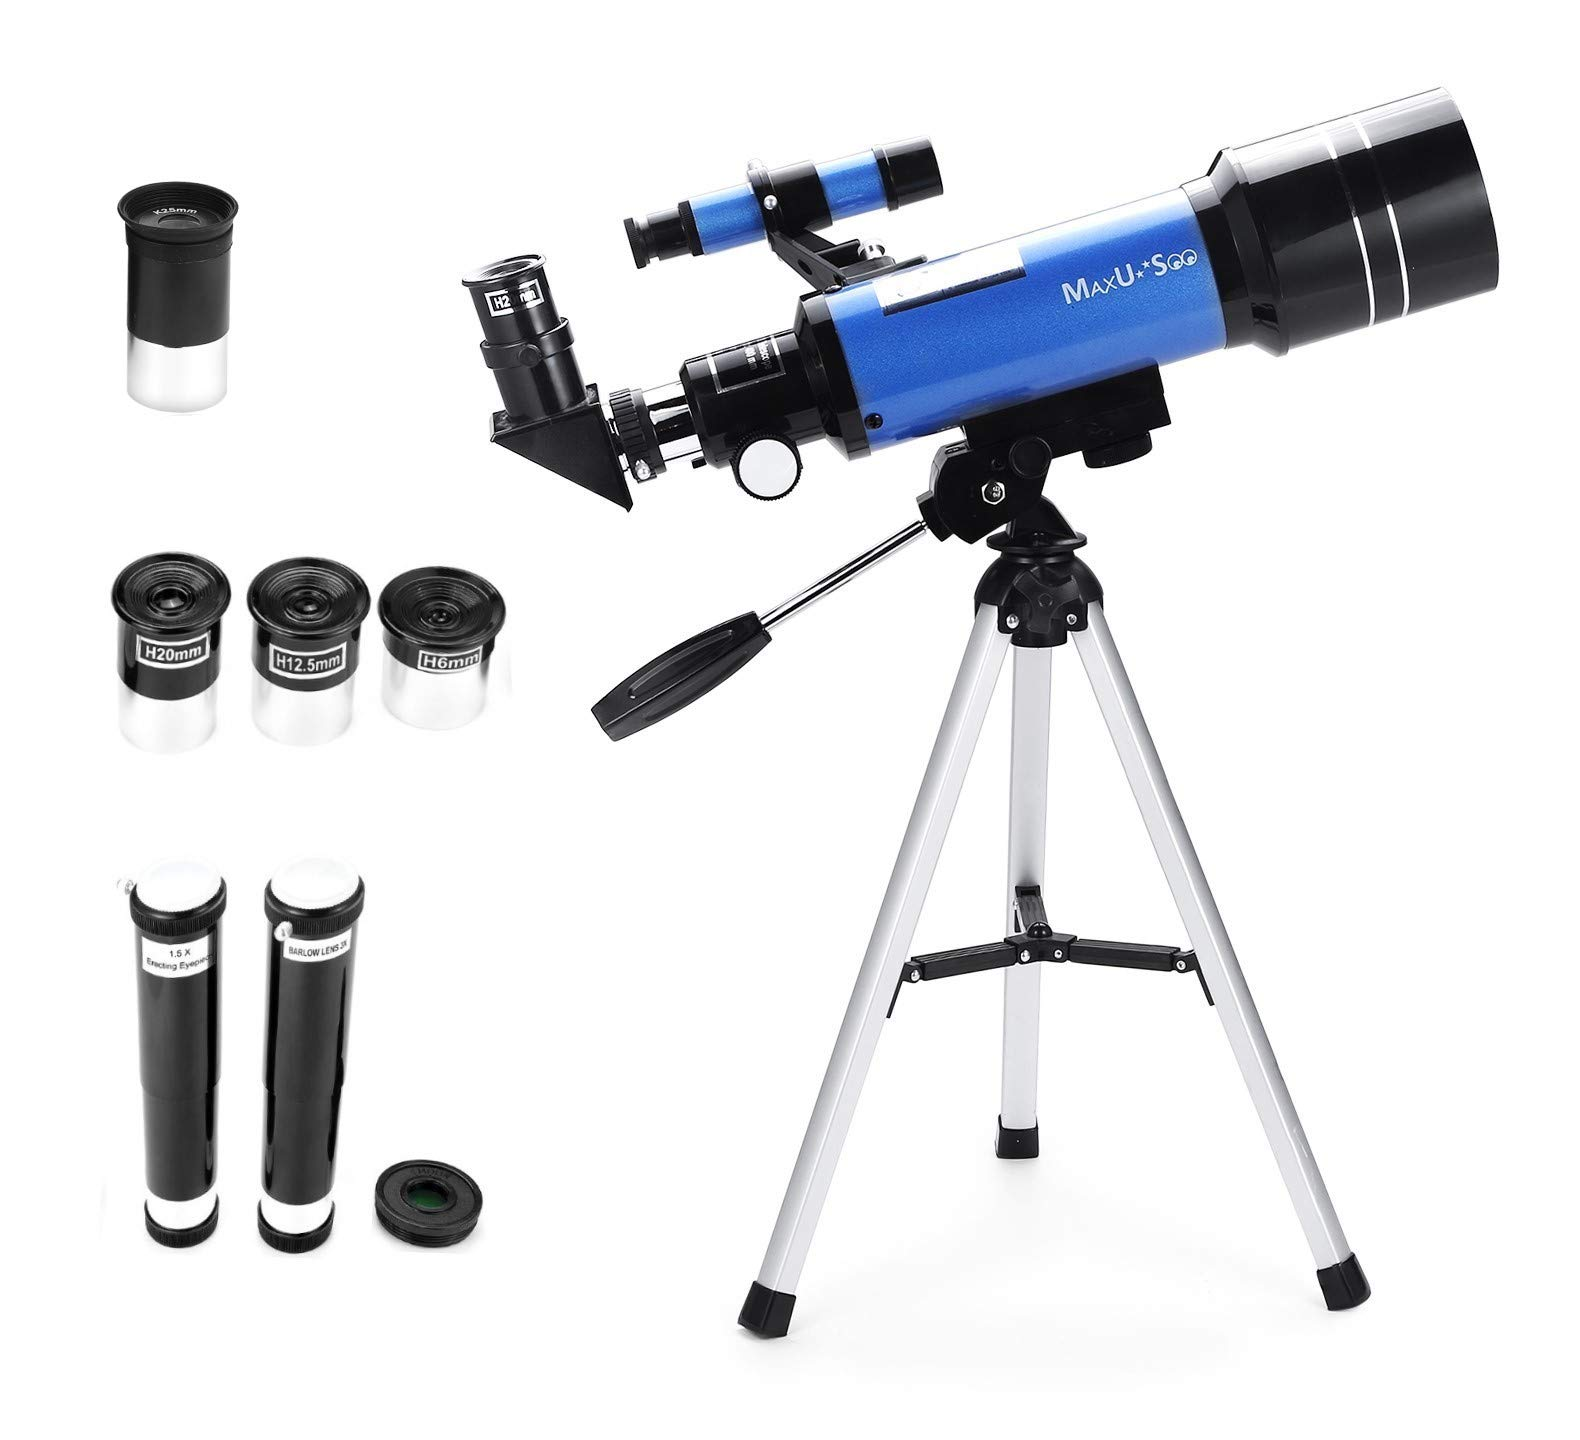 MaxUSee 70mm Refractor Telescope with Tripod & Finder Scope, Portable Telescope for Kids & Astronomy Beginners, Travel Scope with 3 Magnification eyepieces & Moon Mirror Blue by MaxUSee